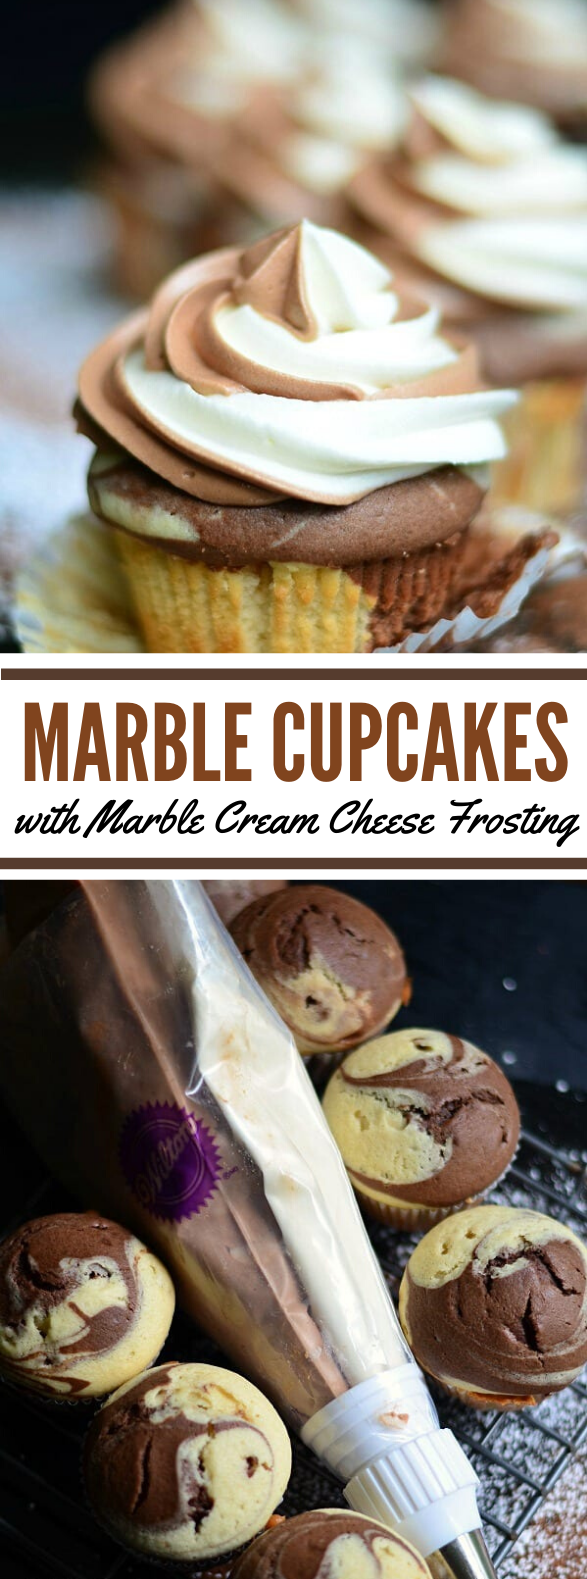 Marble Cupcakes with Marble Cream Cheese Frosting #desserts #cake